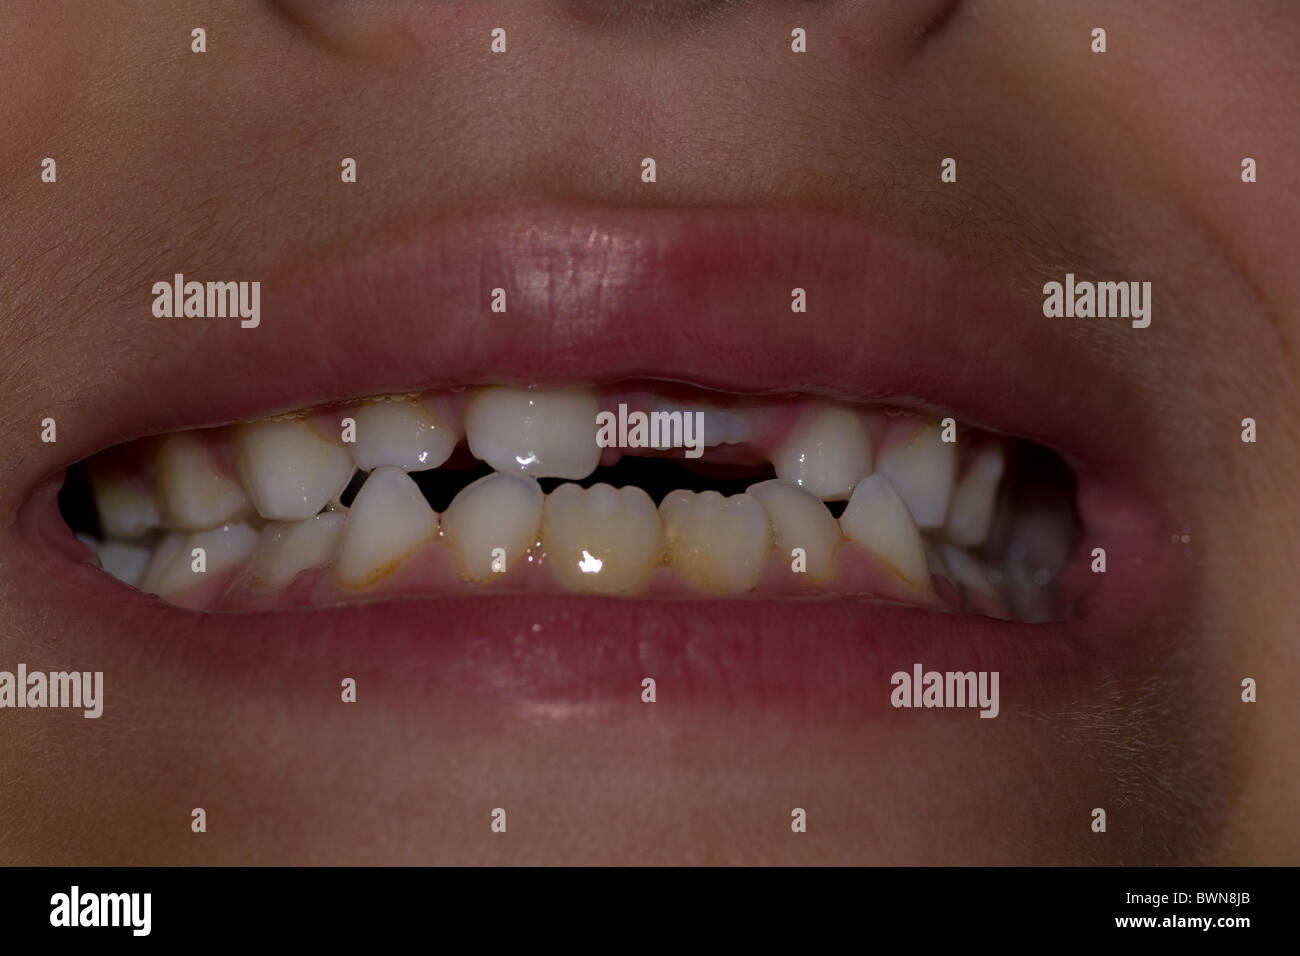 dirty dentist stock photos dirty dentist stock images alamy. Black Bedroom Furniture Sets. Home Design Ideas